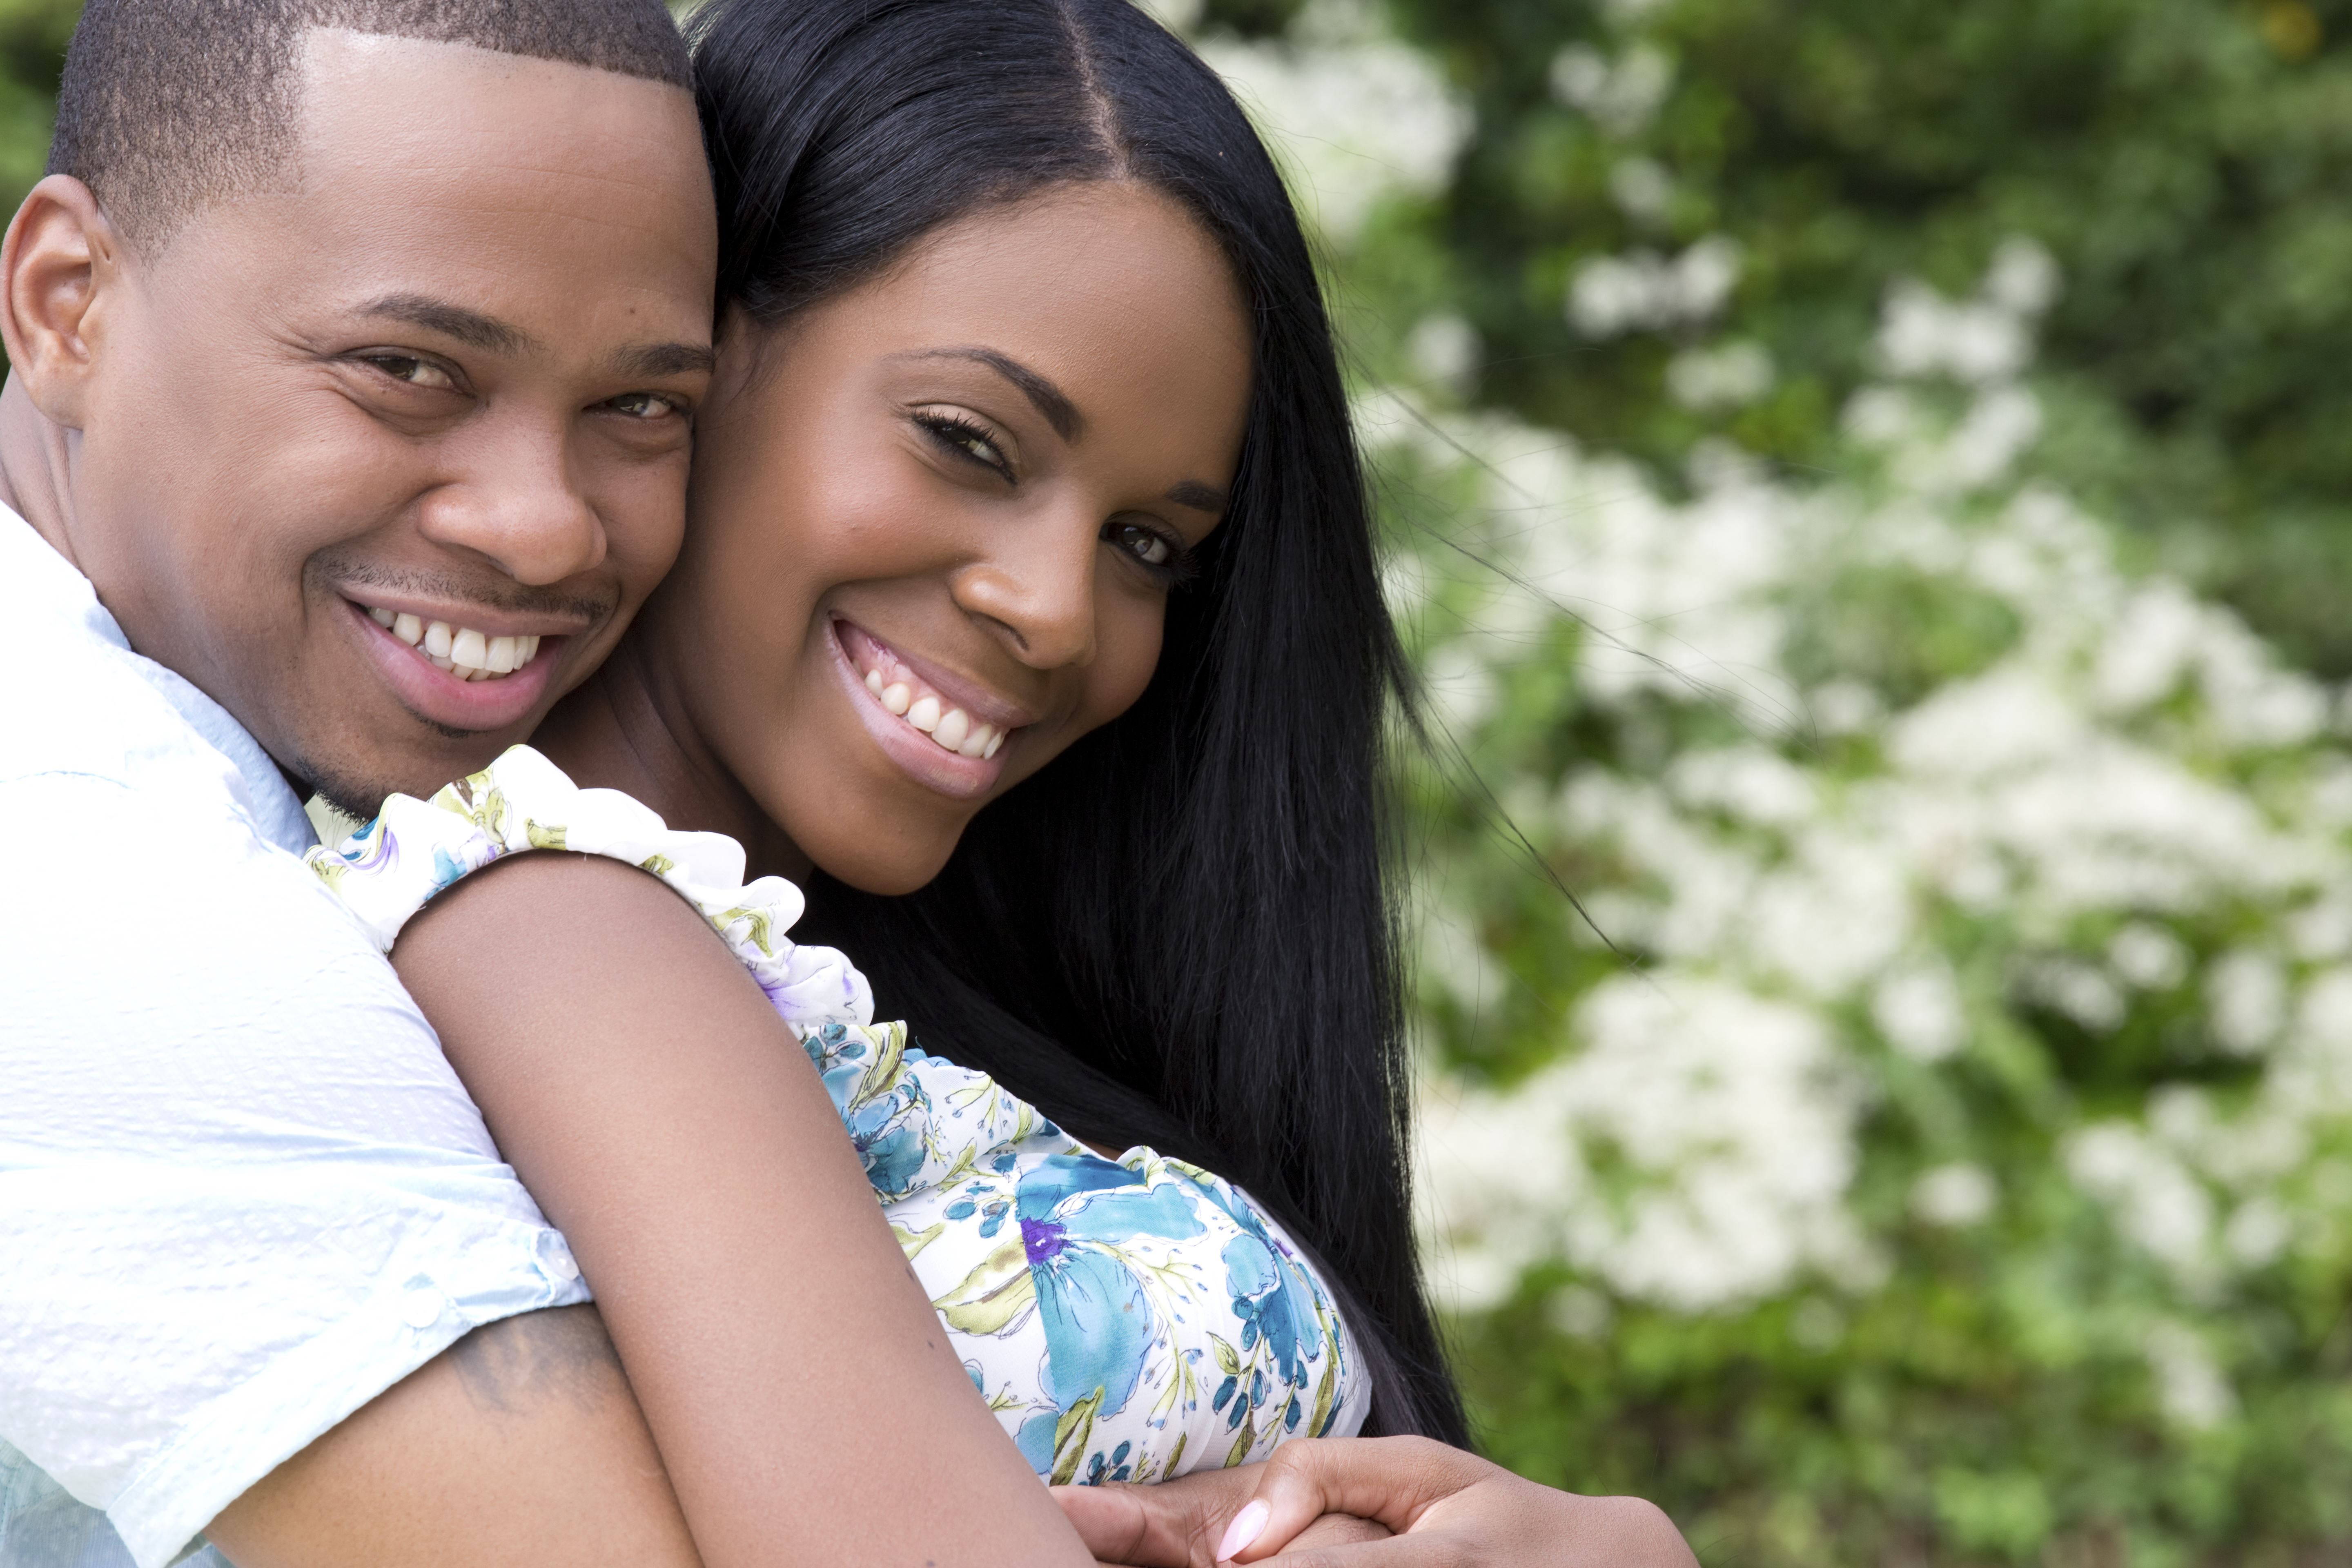 A smiling man hugging a smiling woman tightly